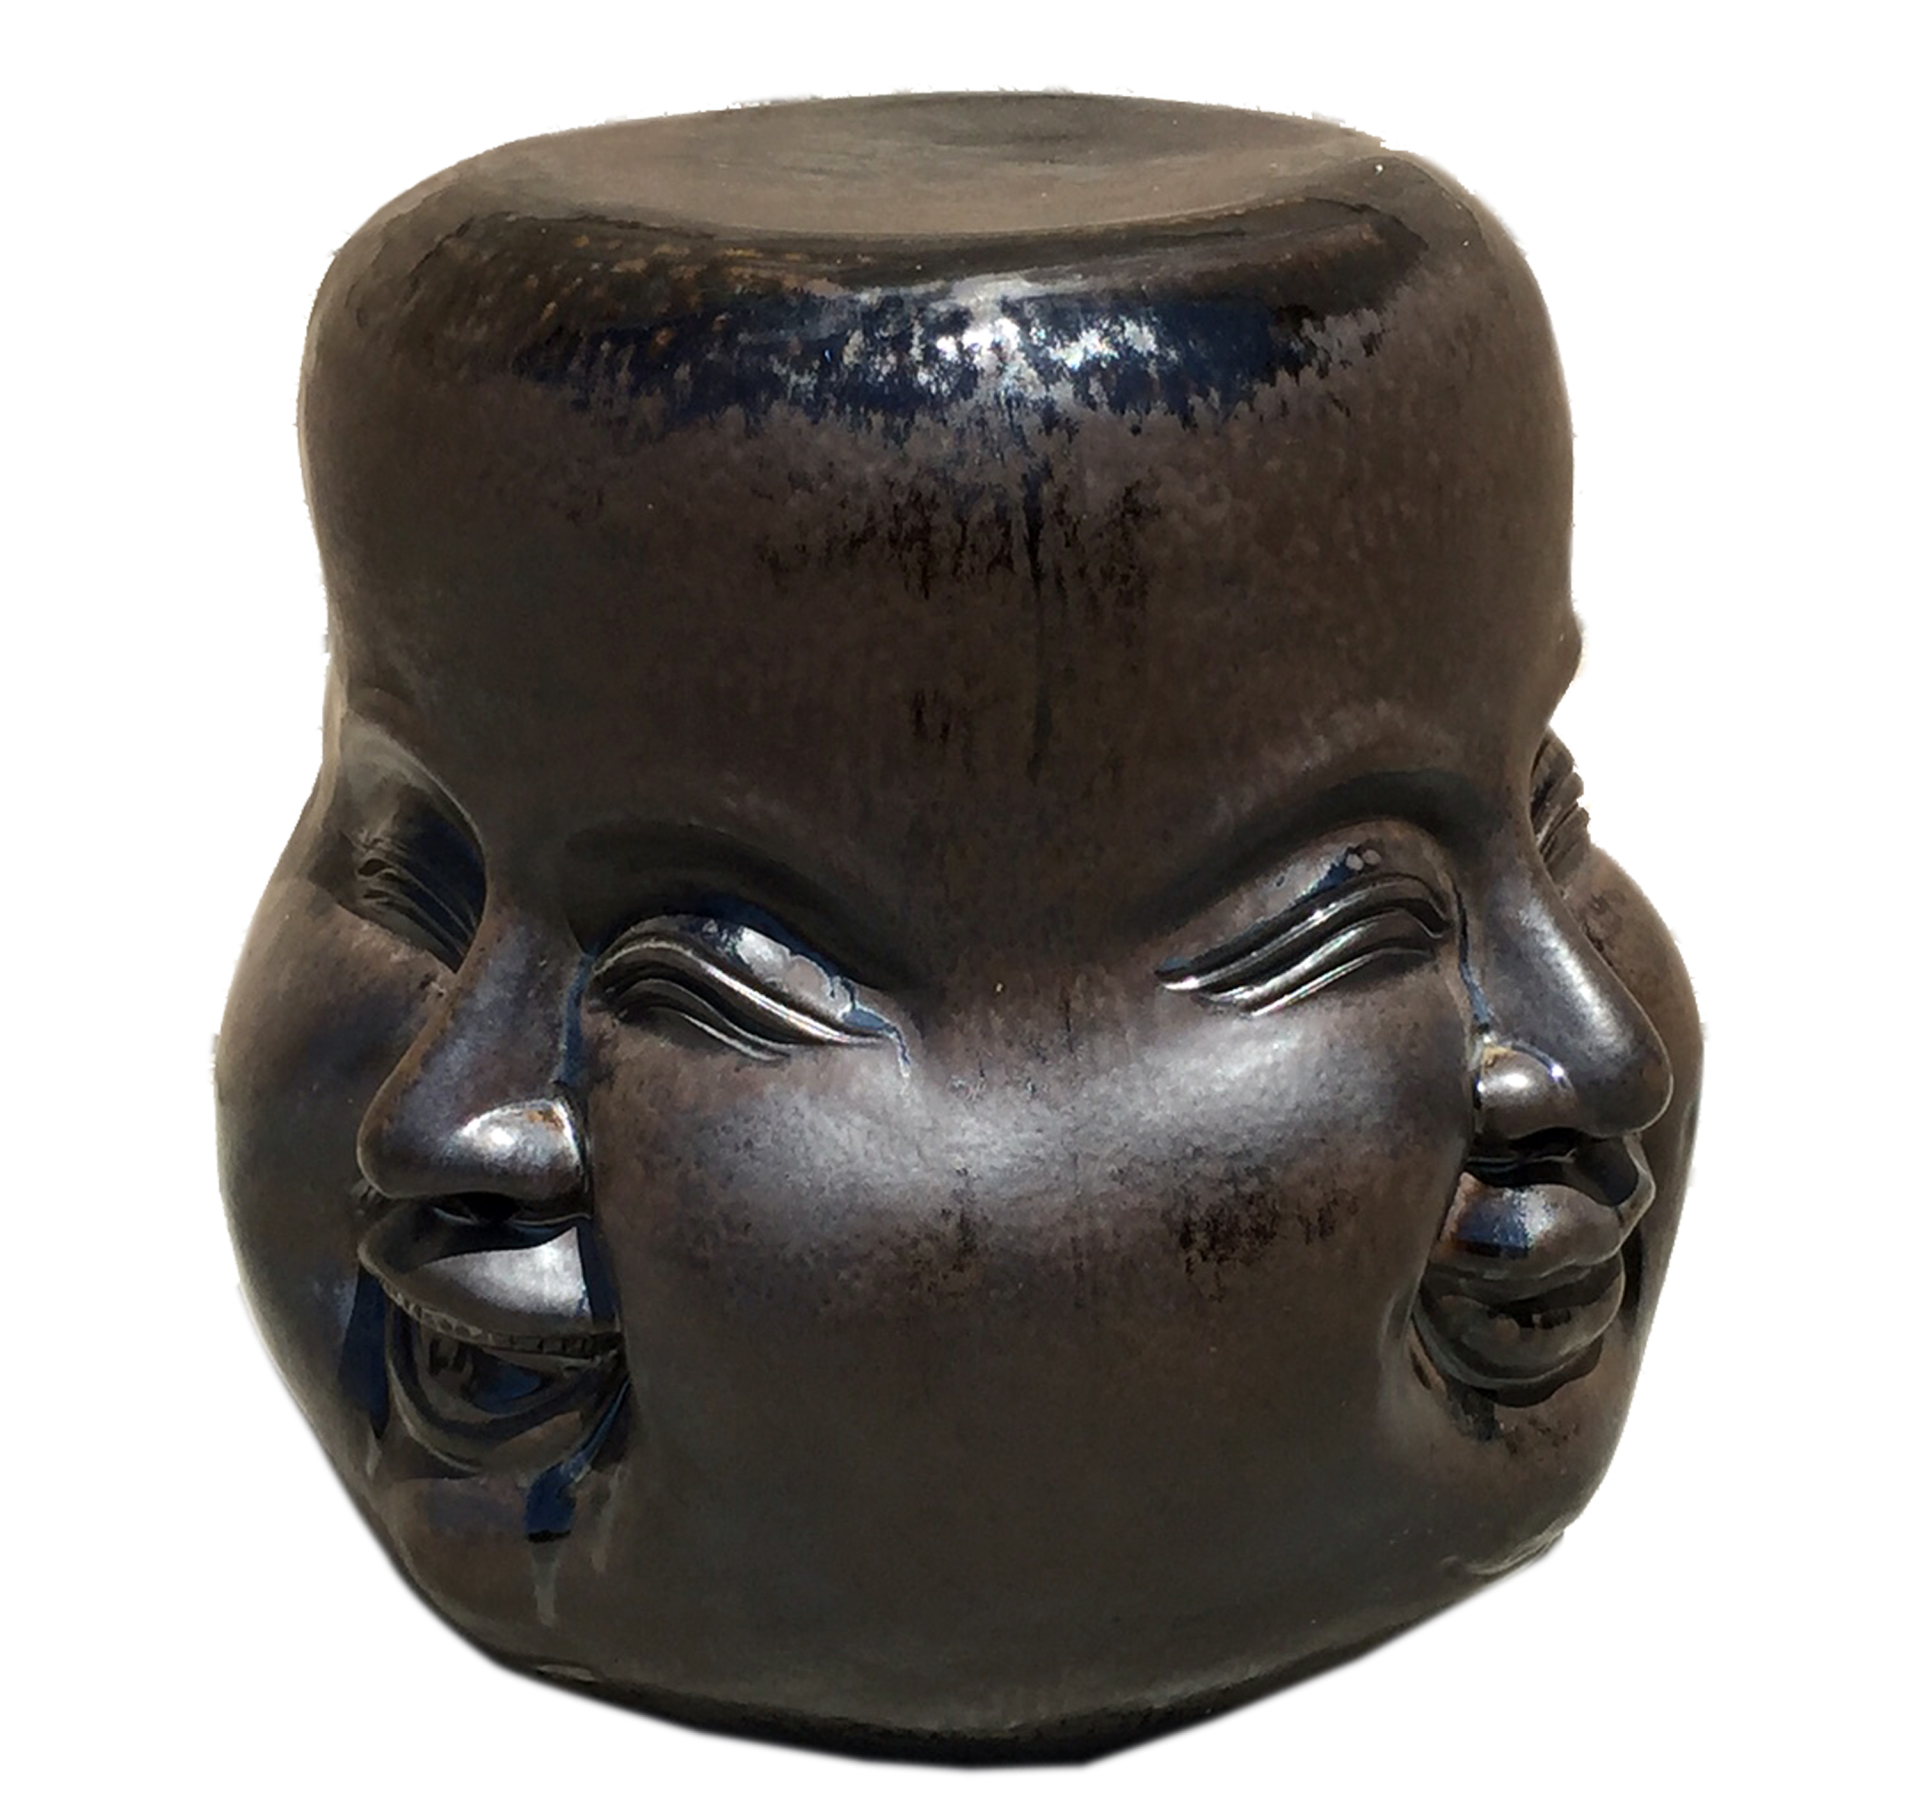 ceramic four face stool in dark color